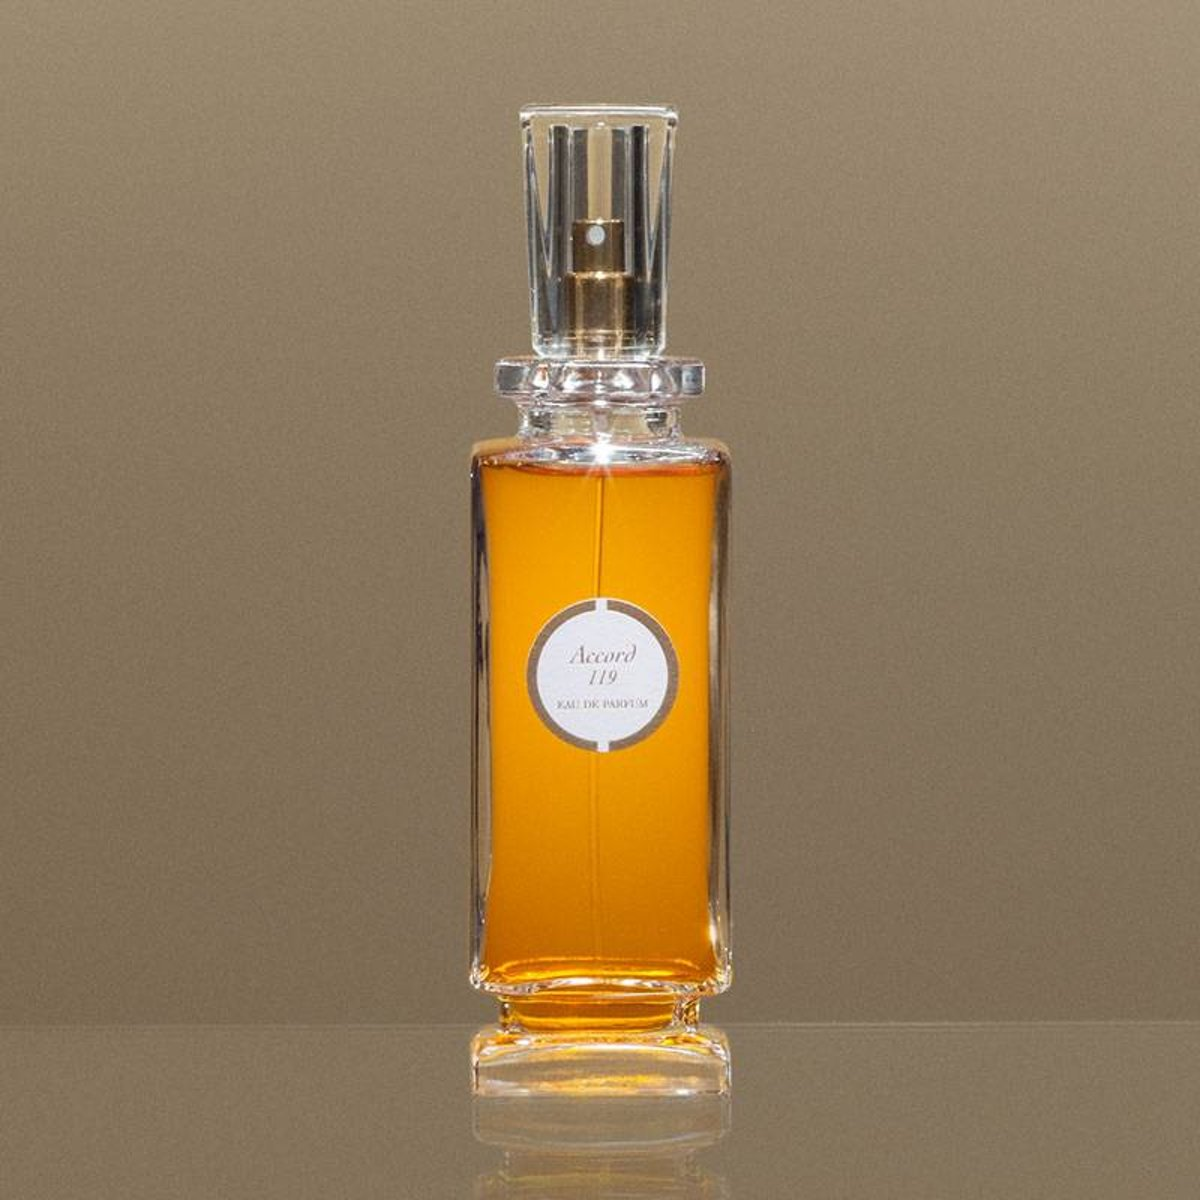 Caron Paris Haute Parfumerie - Accord 119